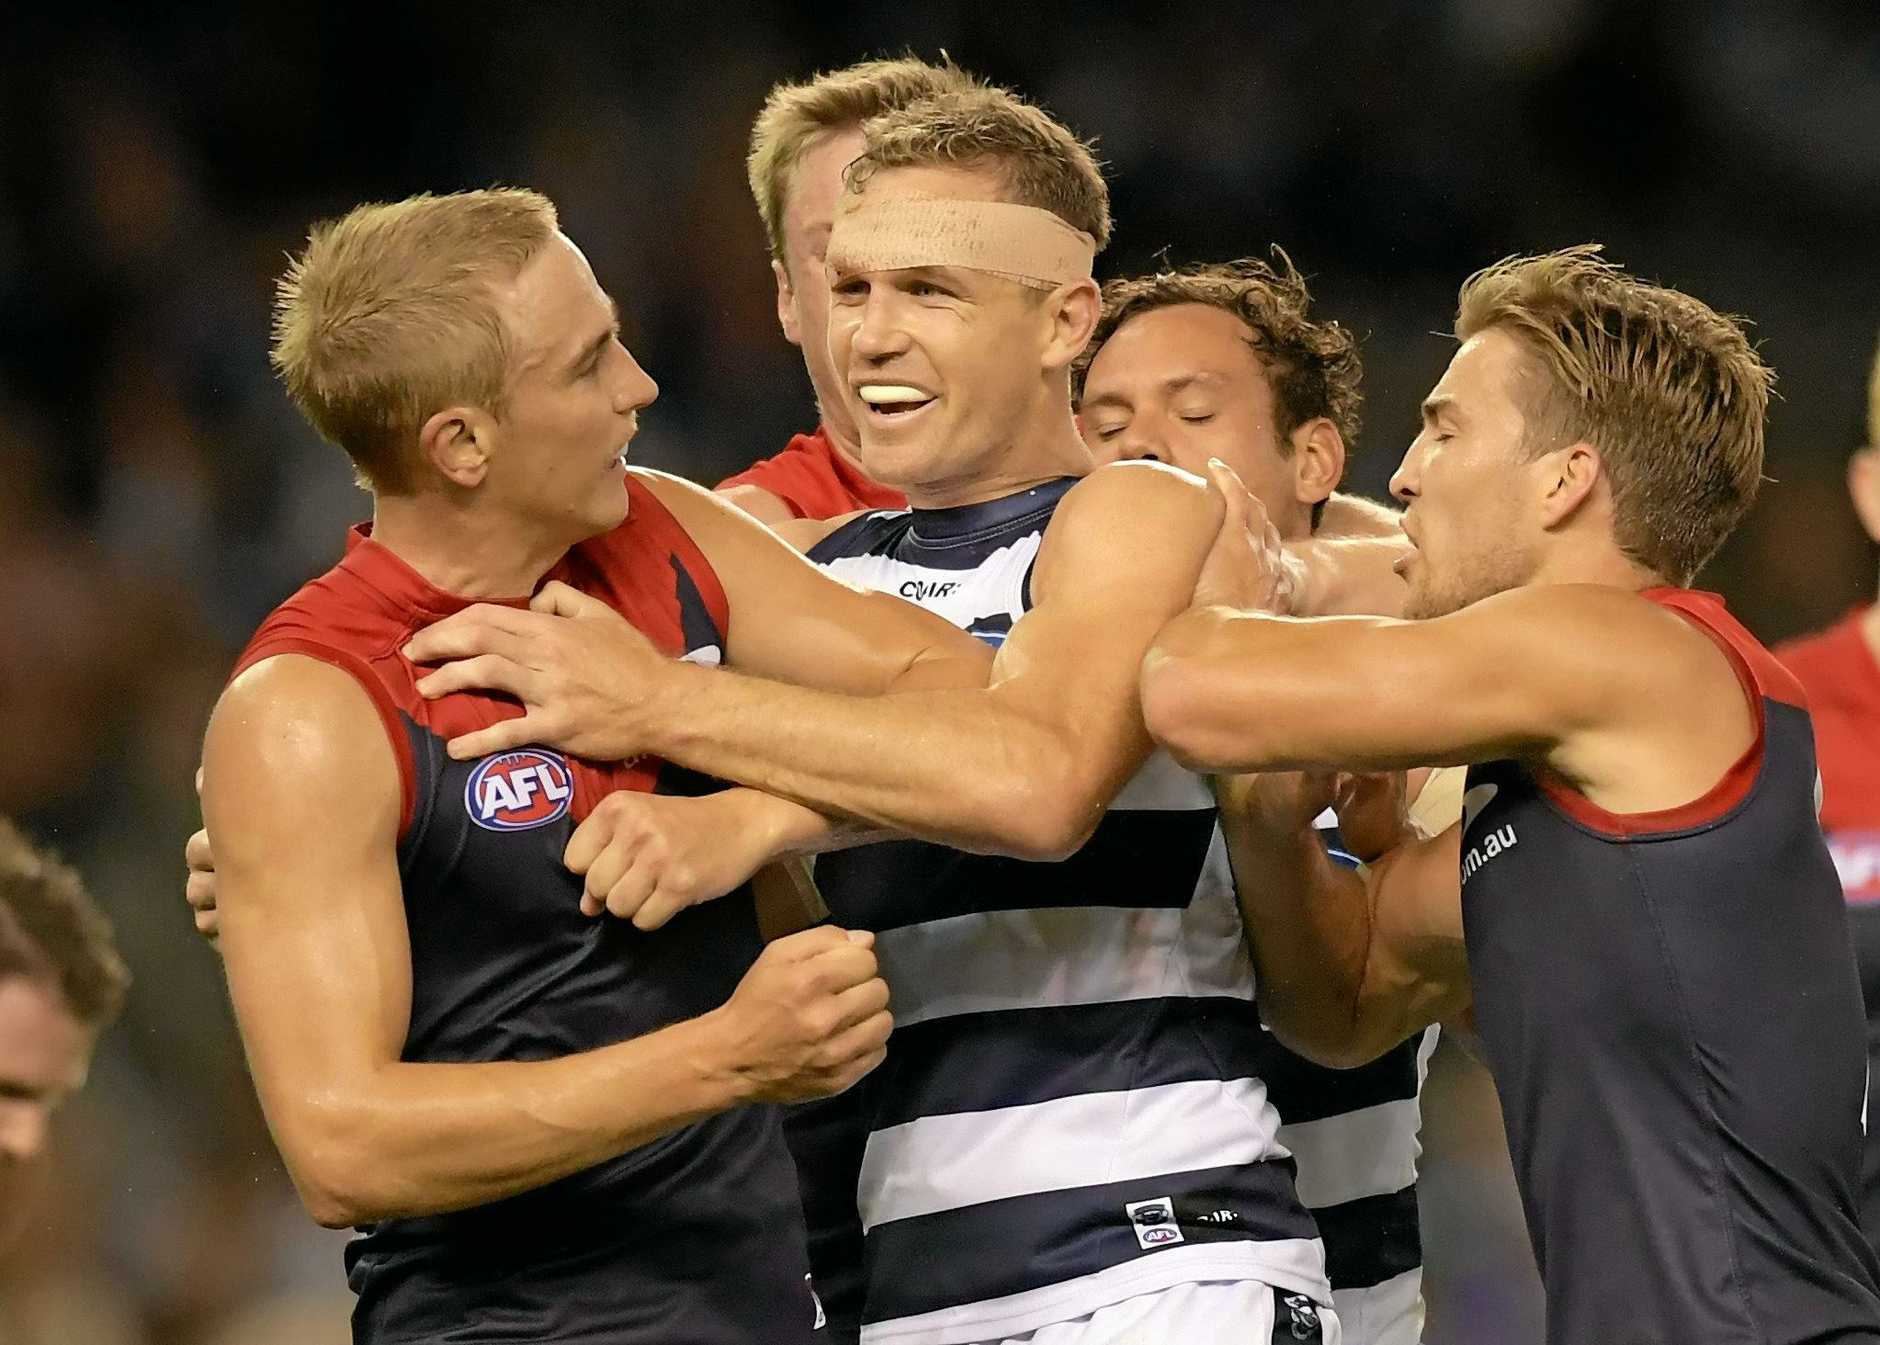 A fight breaks out between Joel Selwood of the Cats (right) and Bernie Vince of the Demons during the Round 3 AFL match between the Geelong Cats and the Melbourne Demons at Etihad Stadium in Melbourne, Saturday, April 8, 2017. (AAP Image/Tracey Nearmy) NO ARCHIVING, EDITORIAL USE ONLY